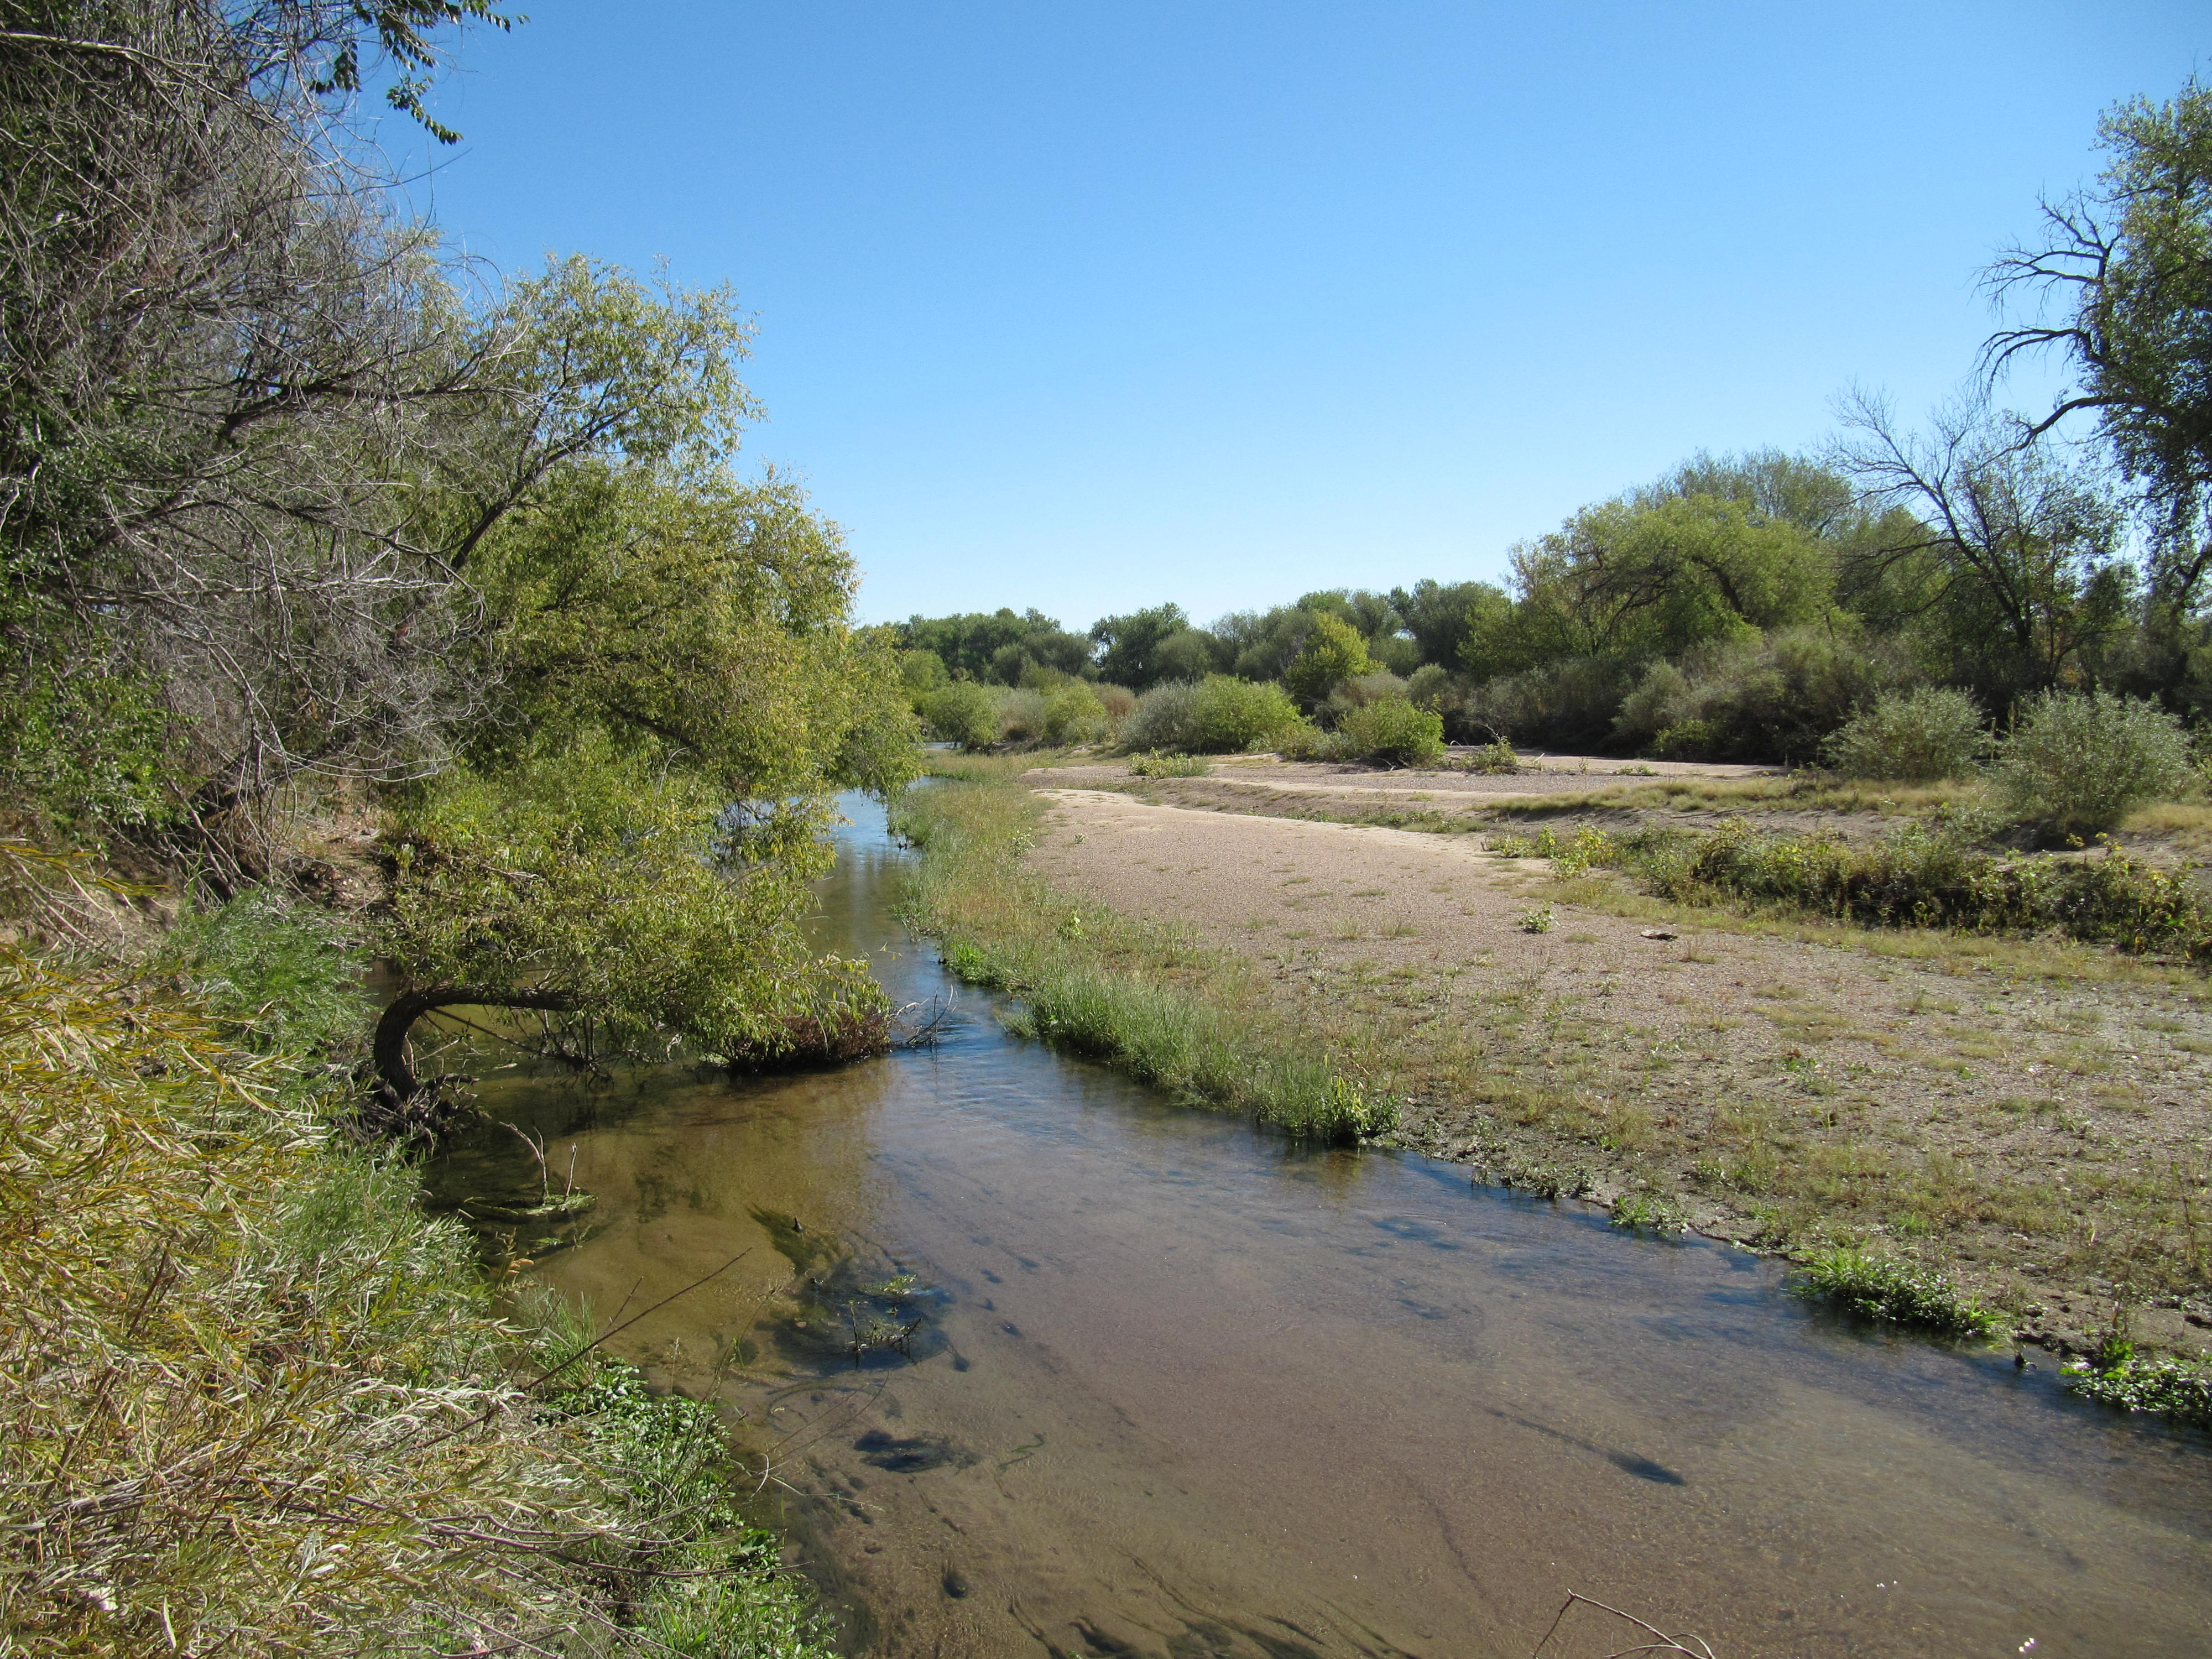 greeley-co-59-acres-river-property_1